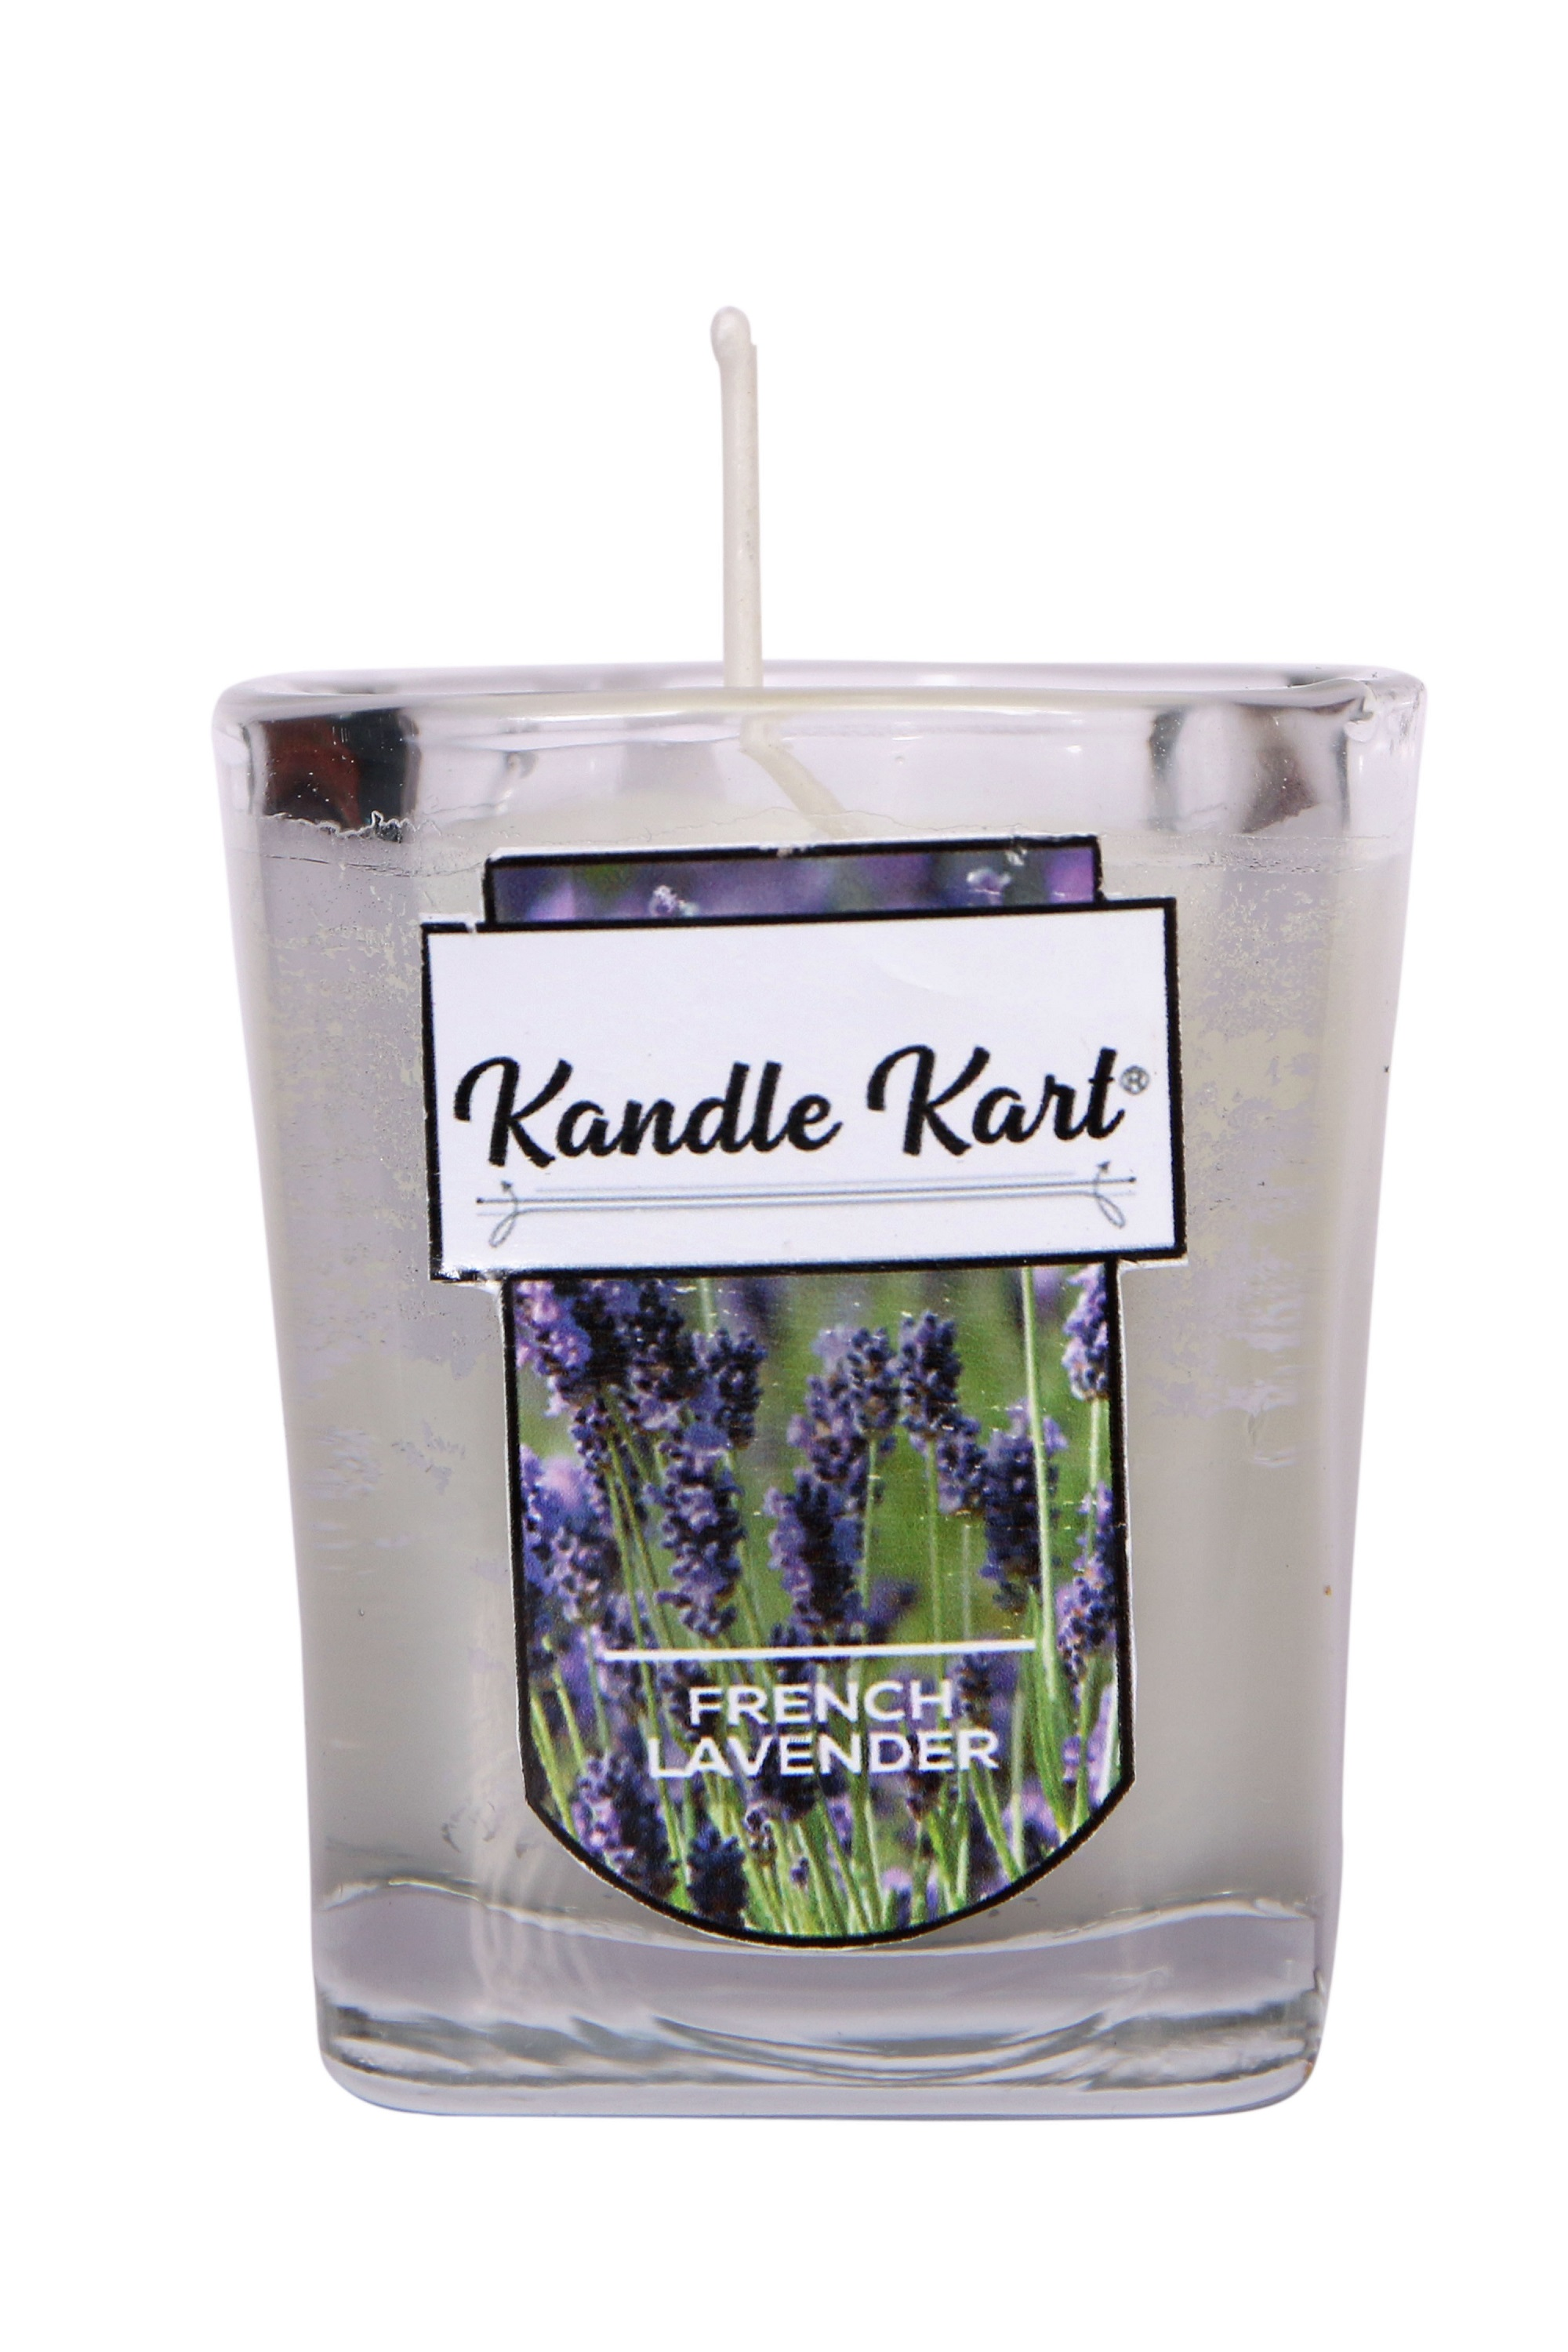 Kandle Kart Premium Scented Candle French Lavender  1.8 Oz Premium Grade Parrafin + Soy Wax